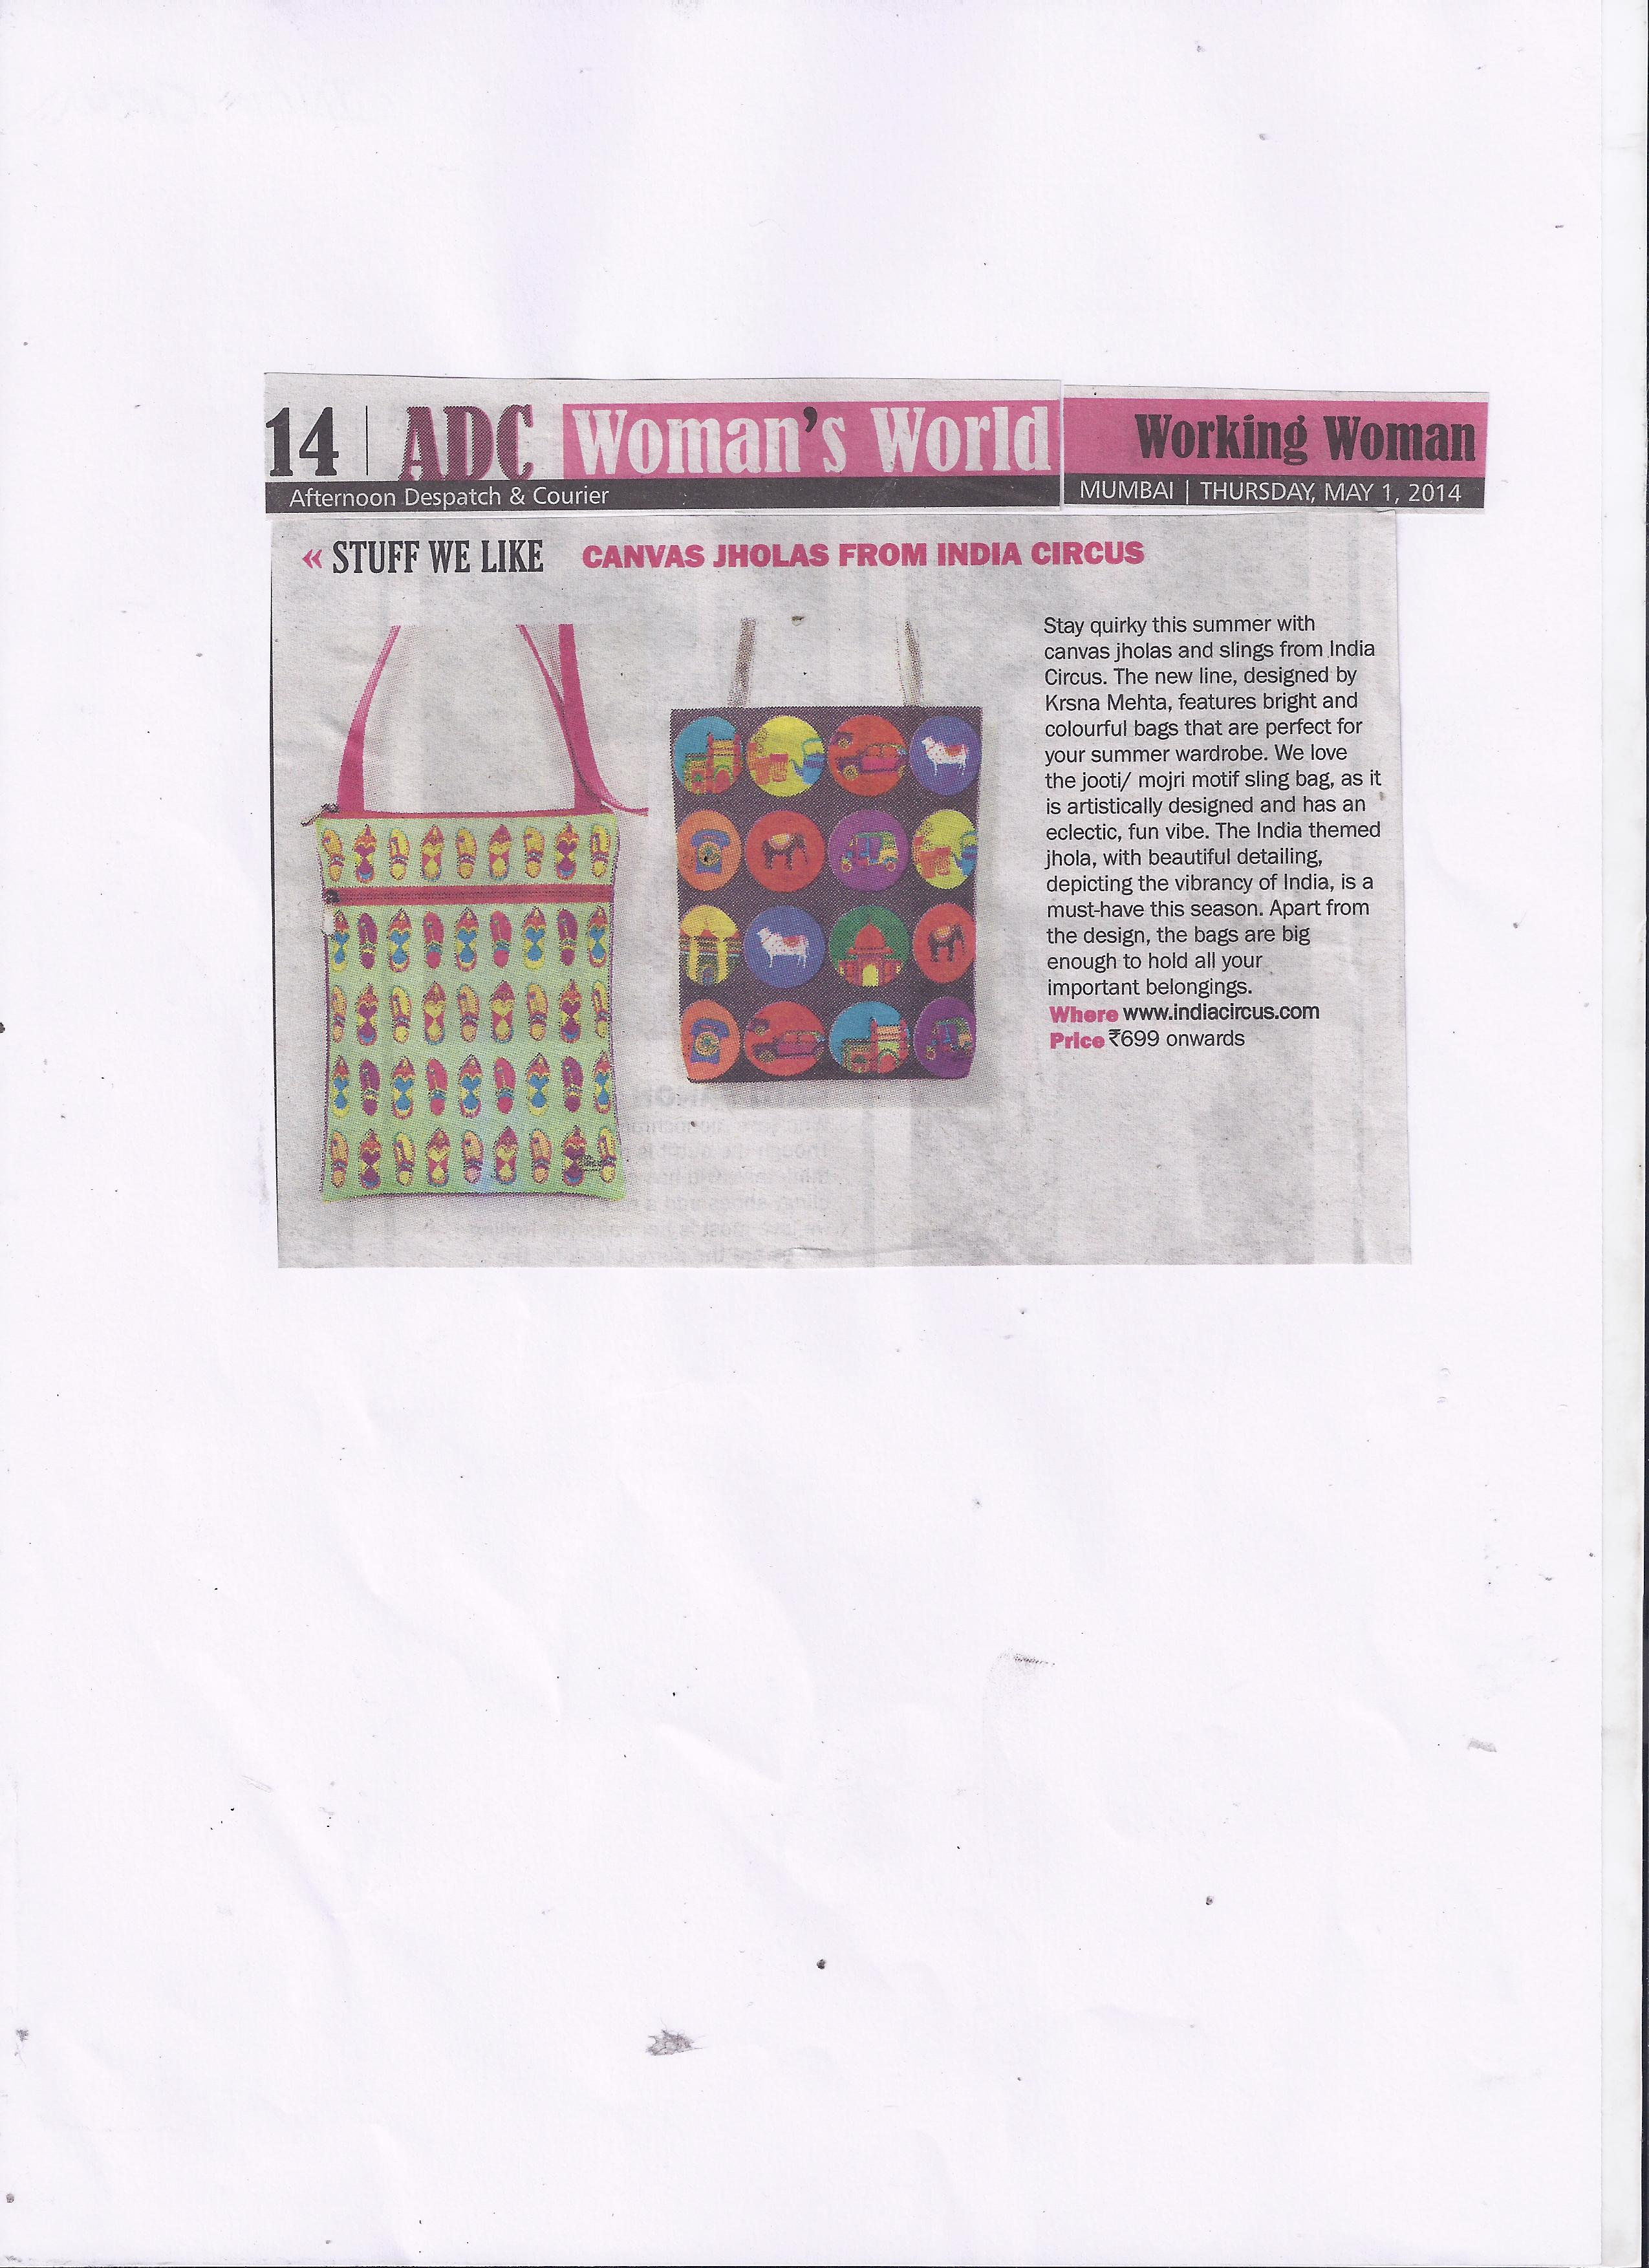 India Circus Canvas Jholas featured in Afternoon Dispatch and Courier